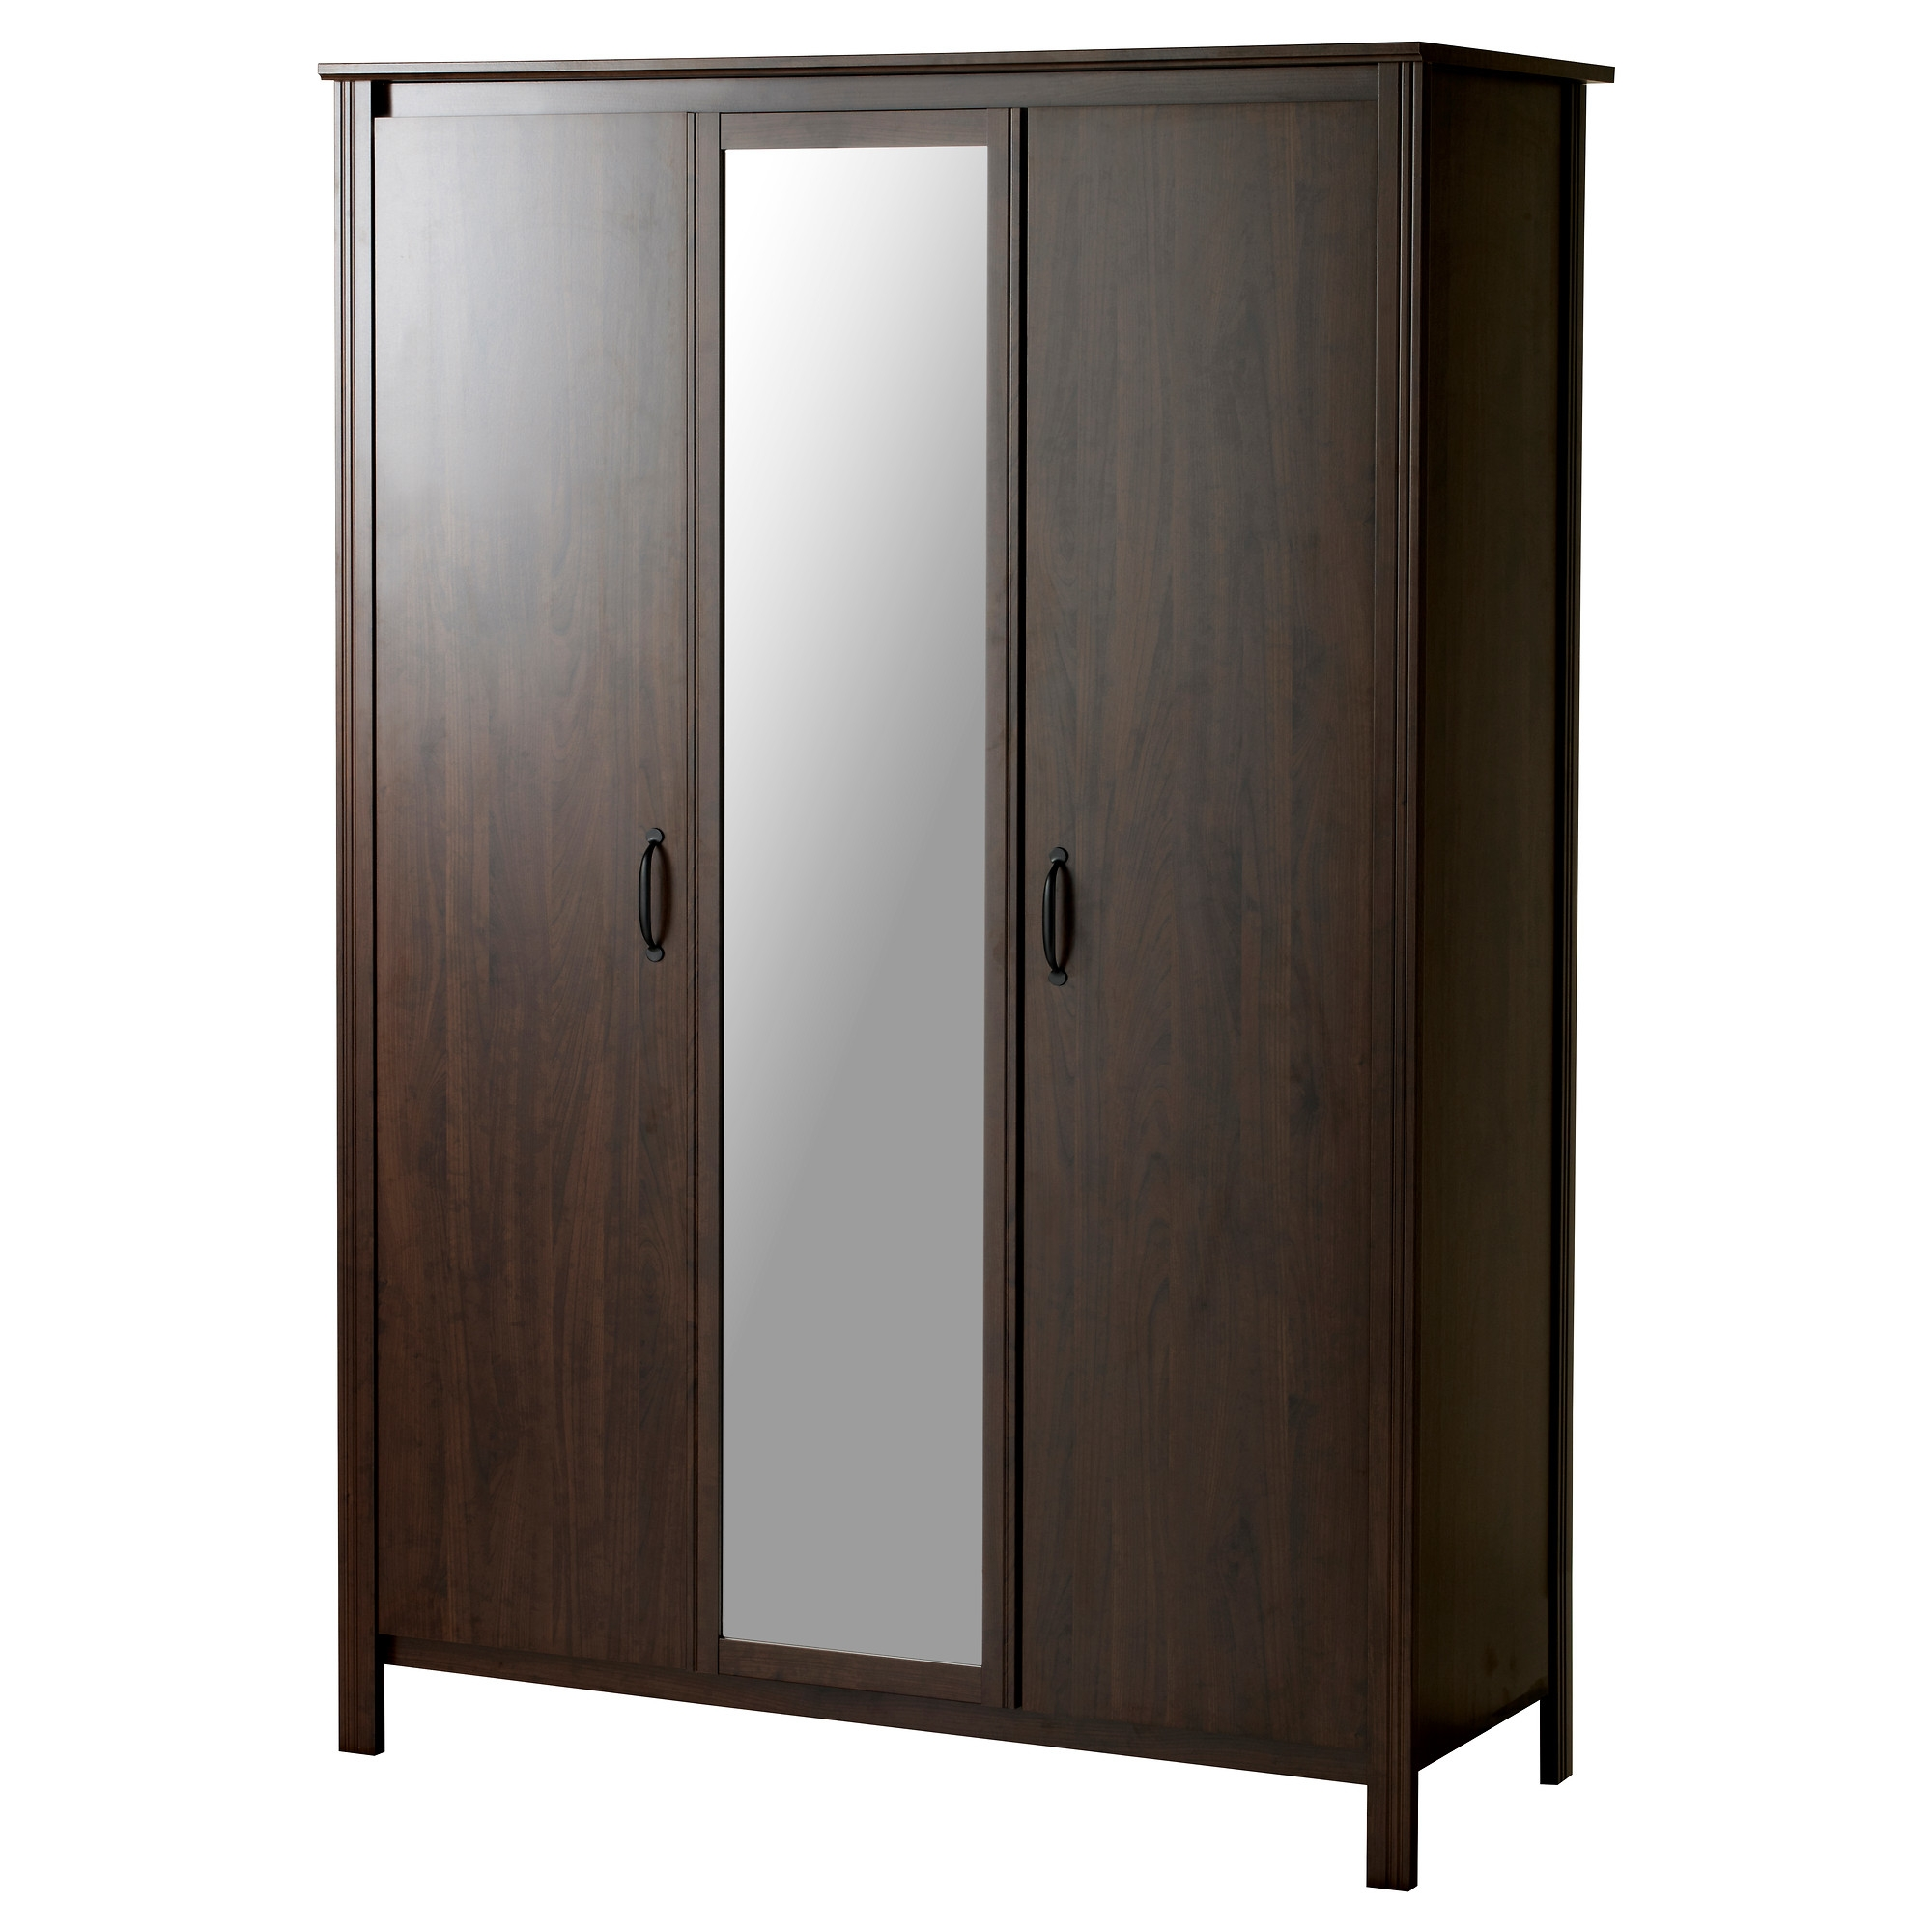 Brusali Wardrobe With 3 Doors Brown Ikea Within Mobile Wardrobe Cabinets (Image 4 of 25)